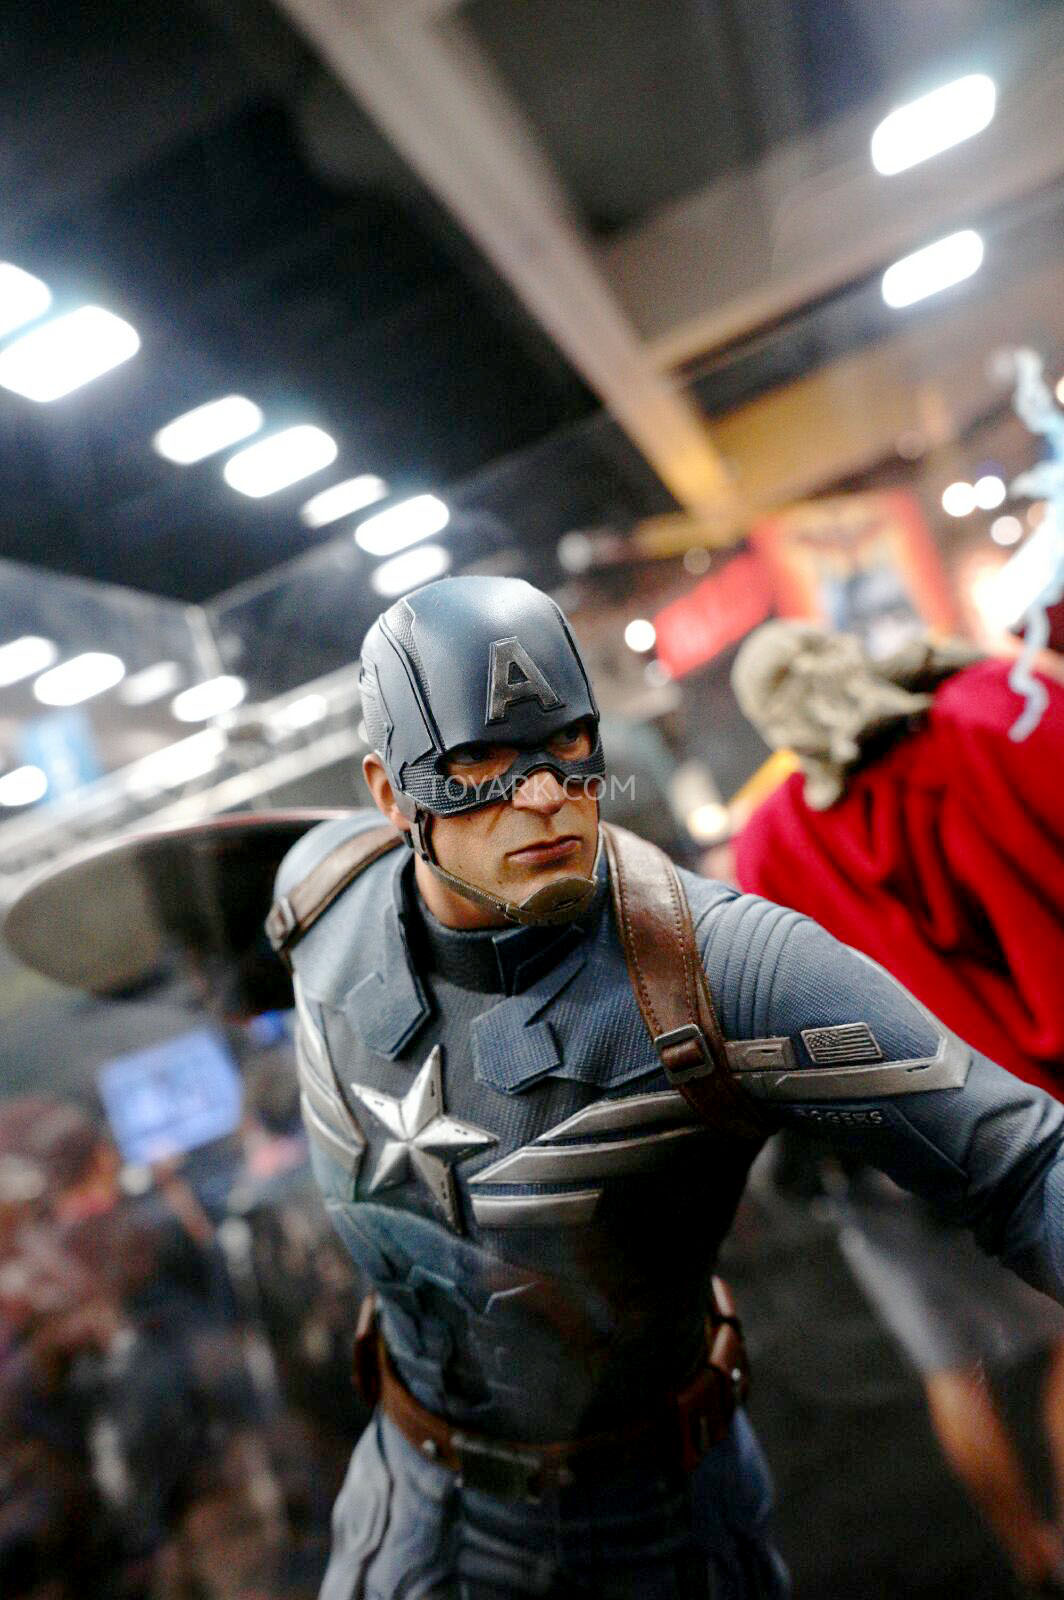 [Sideshow] Premium Format | Captain America: The Winter Soldier - Página 4 SDCC-2014Sideshow-Friday-101